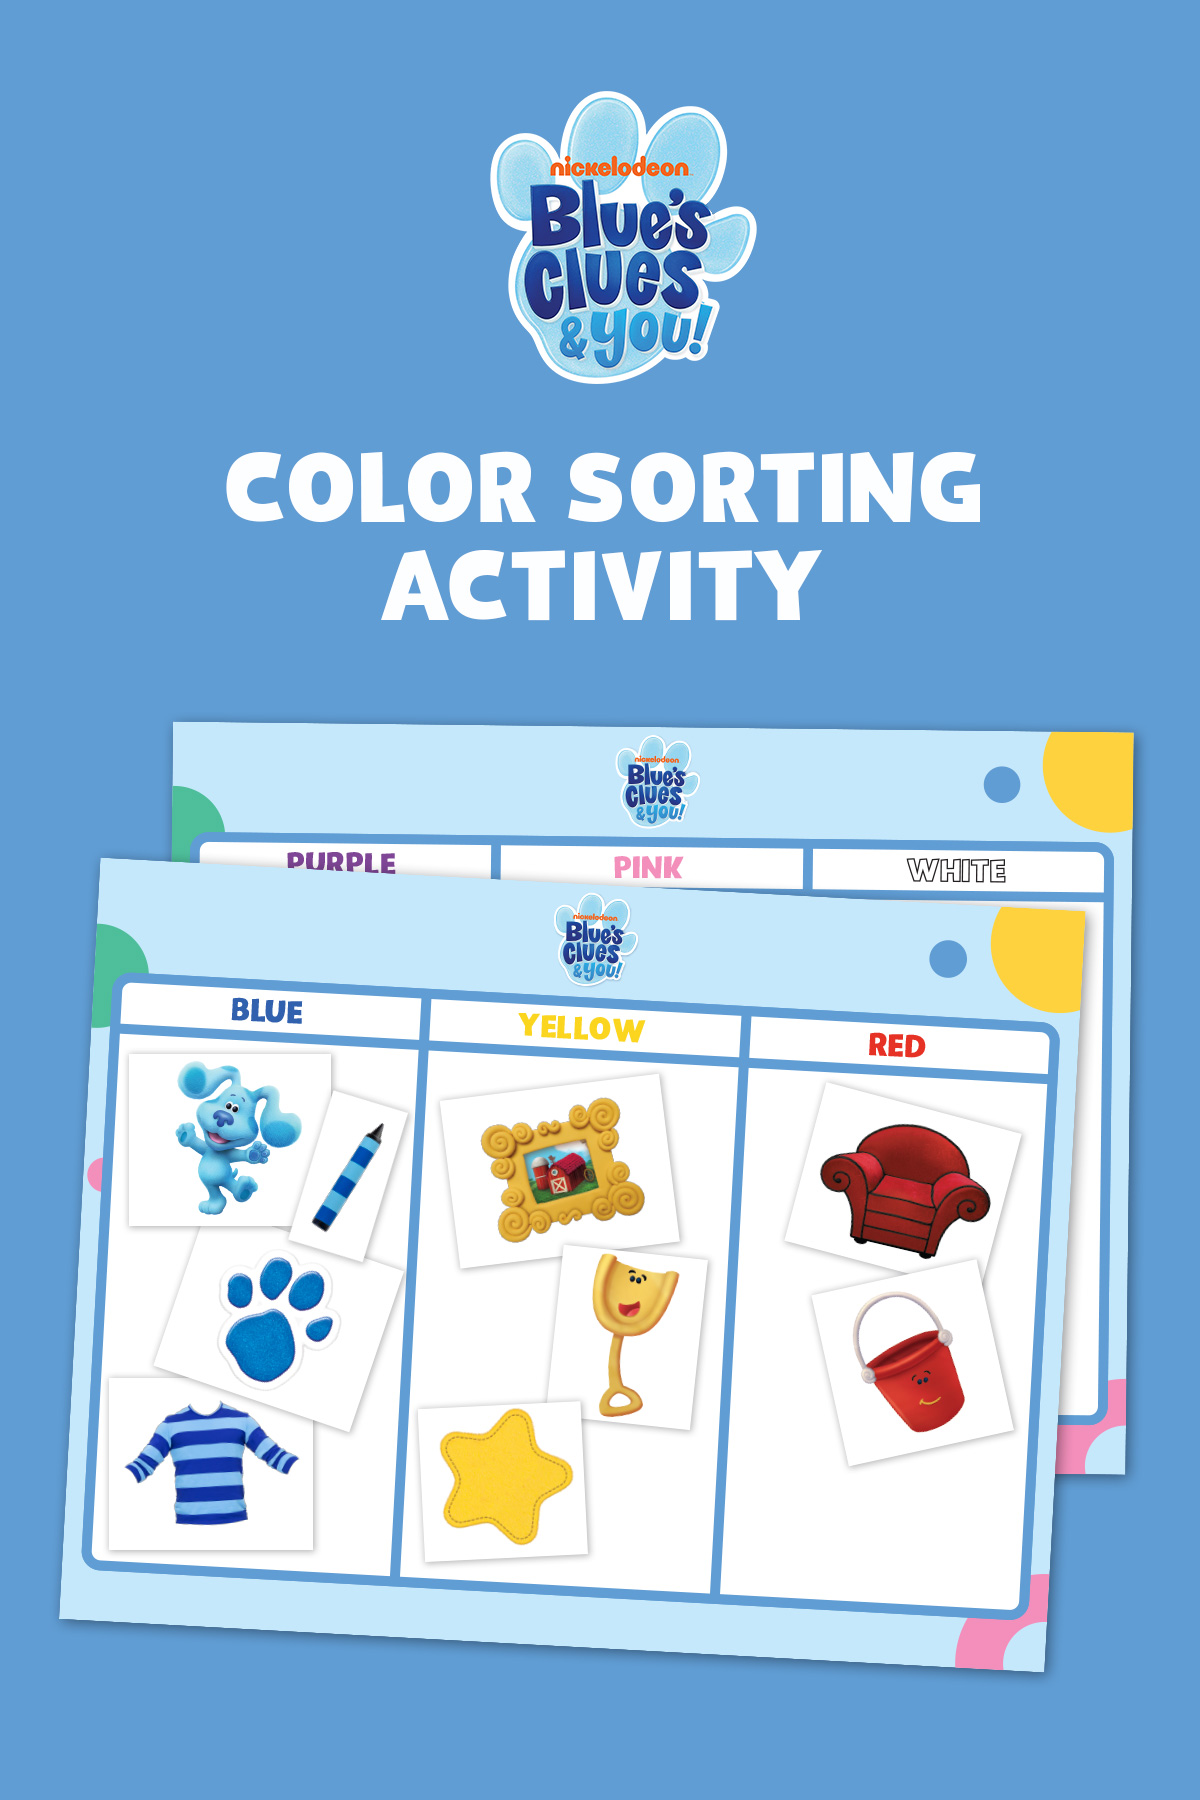 Blue's Clues & You! Color Sorting Activity